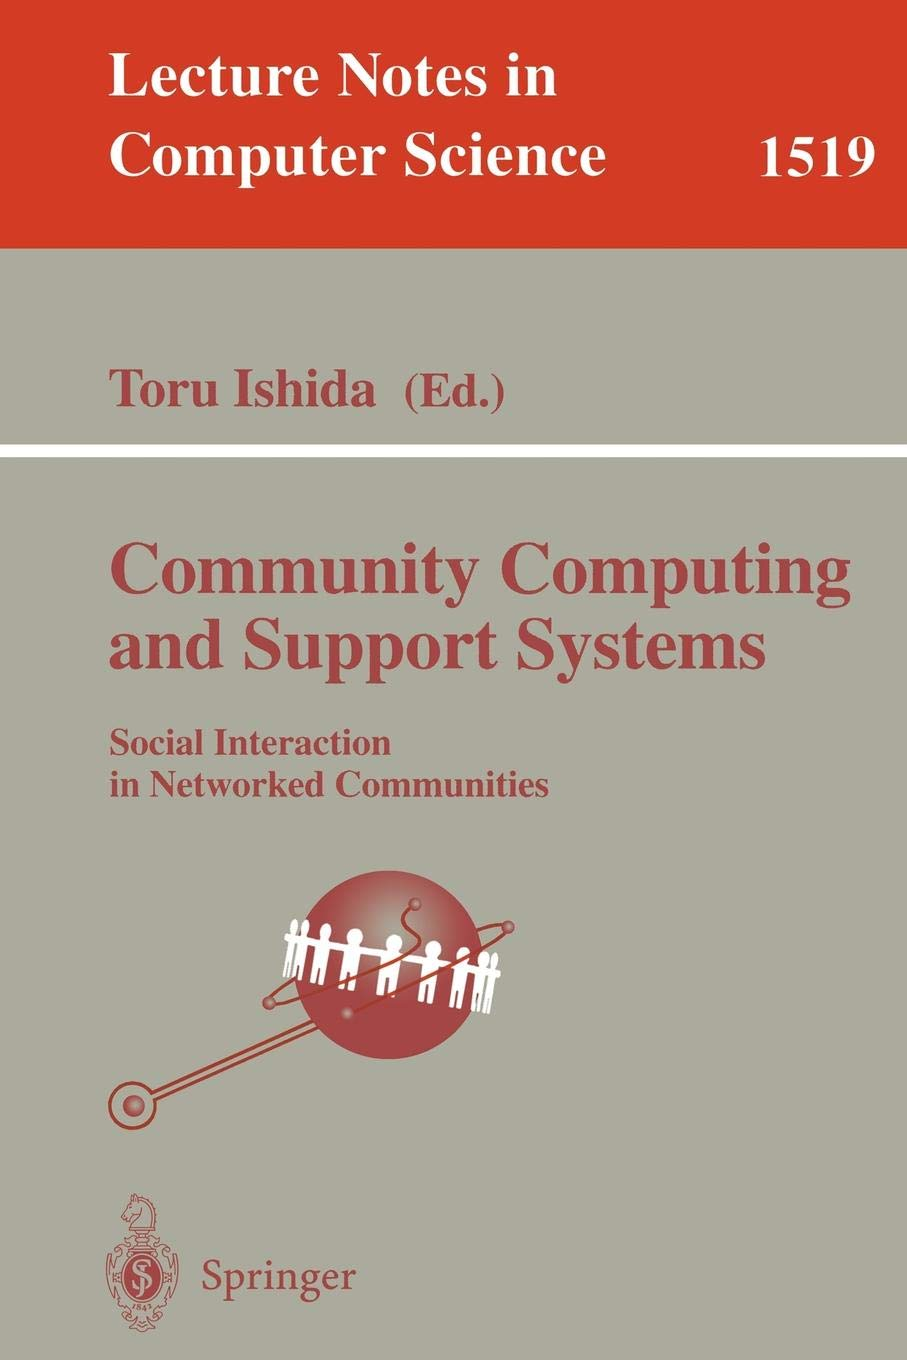 Community Computing and Support Systems: Social